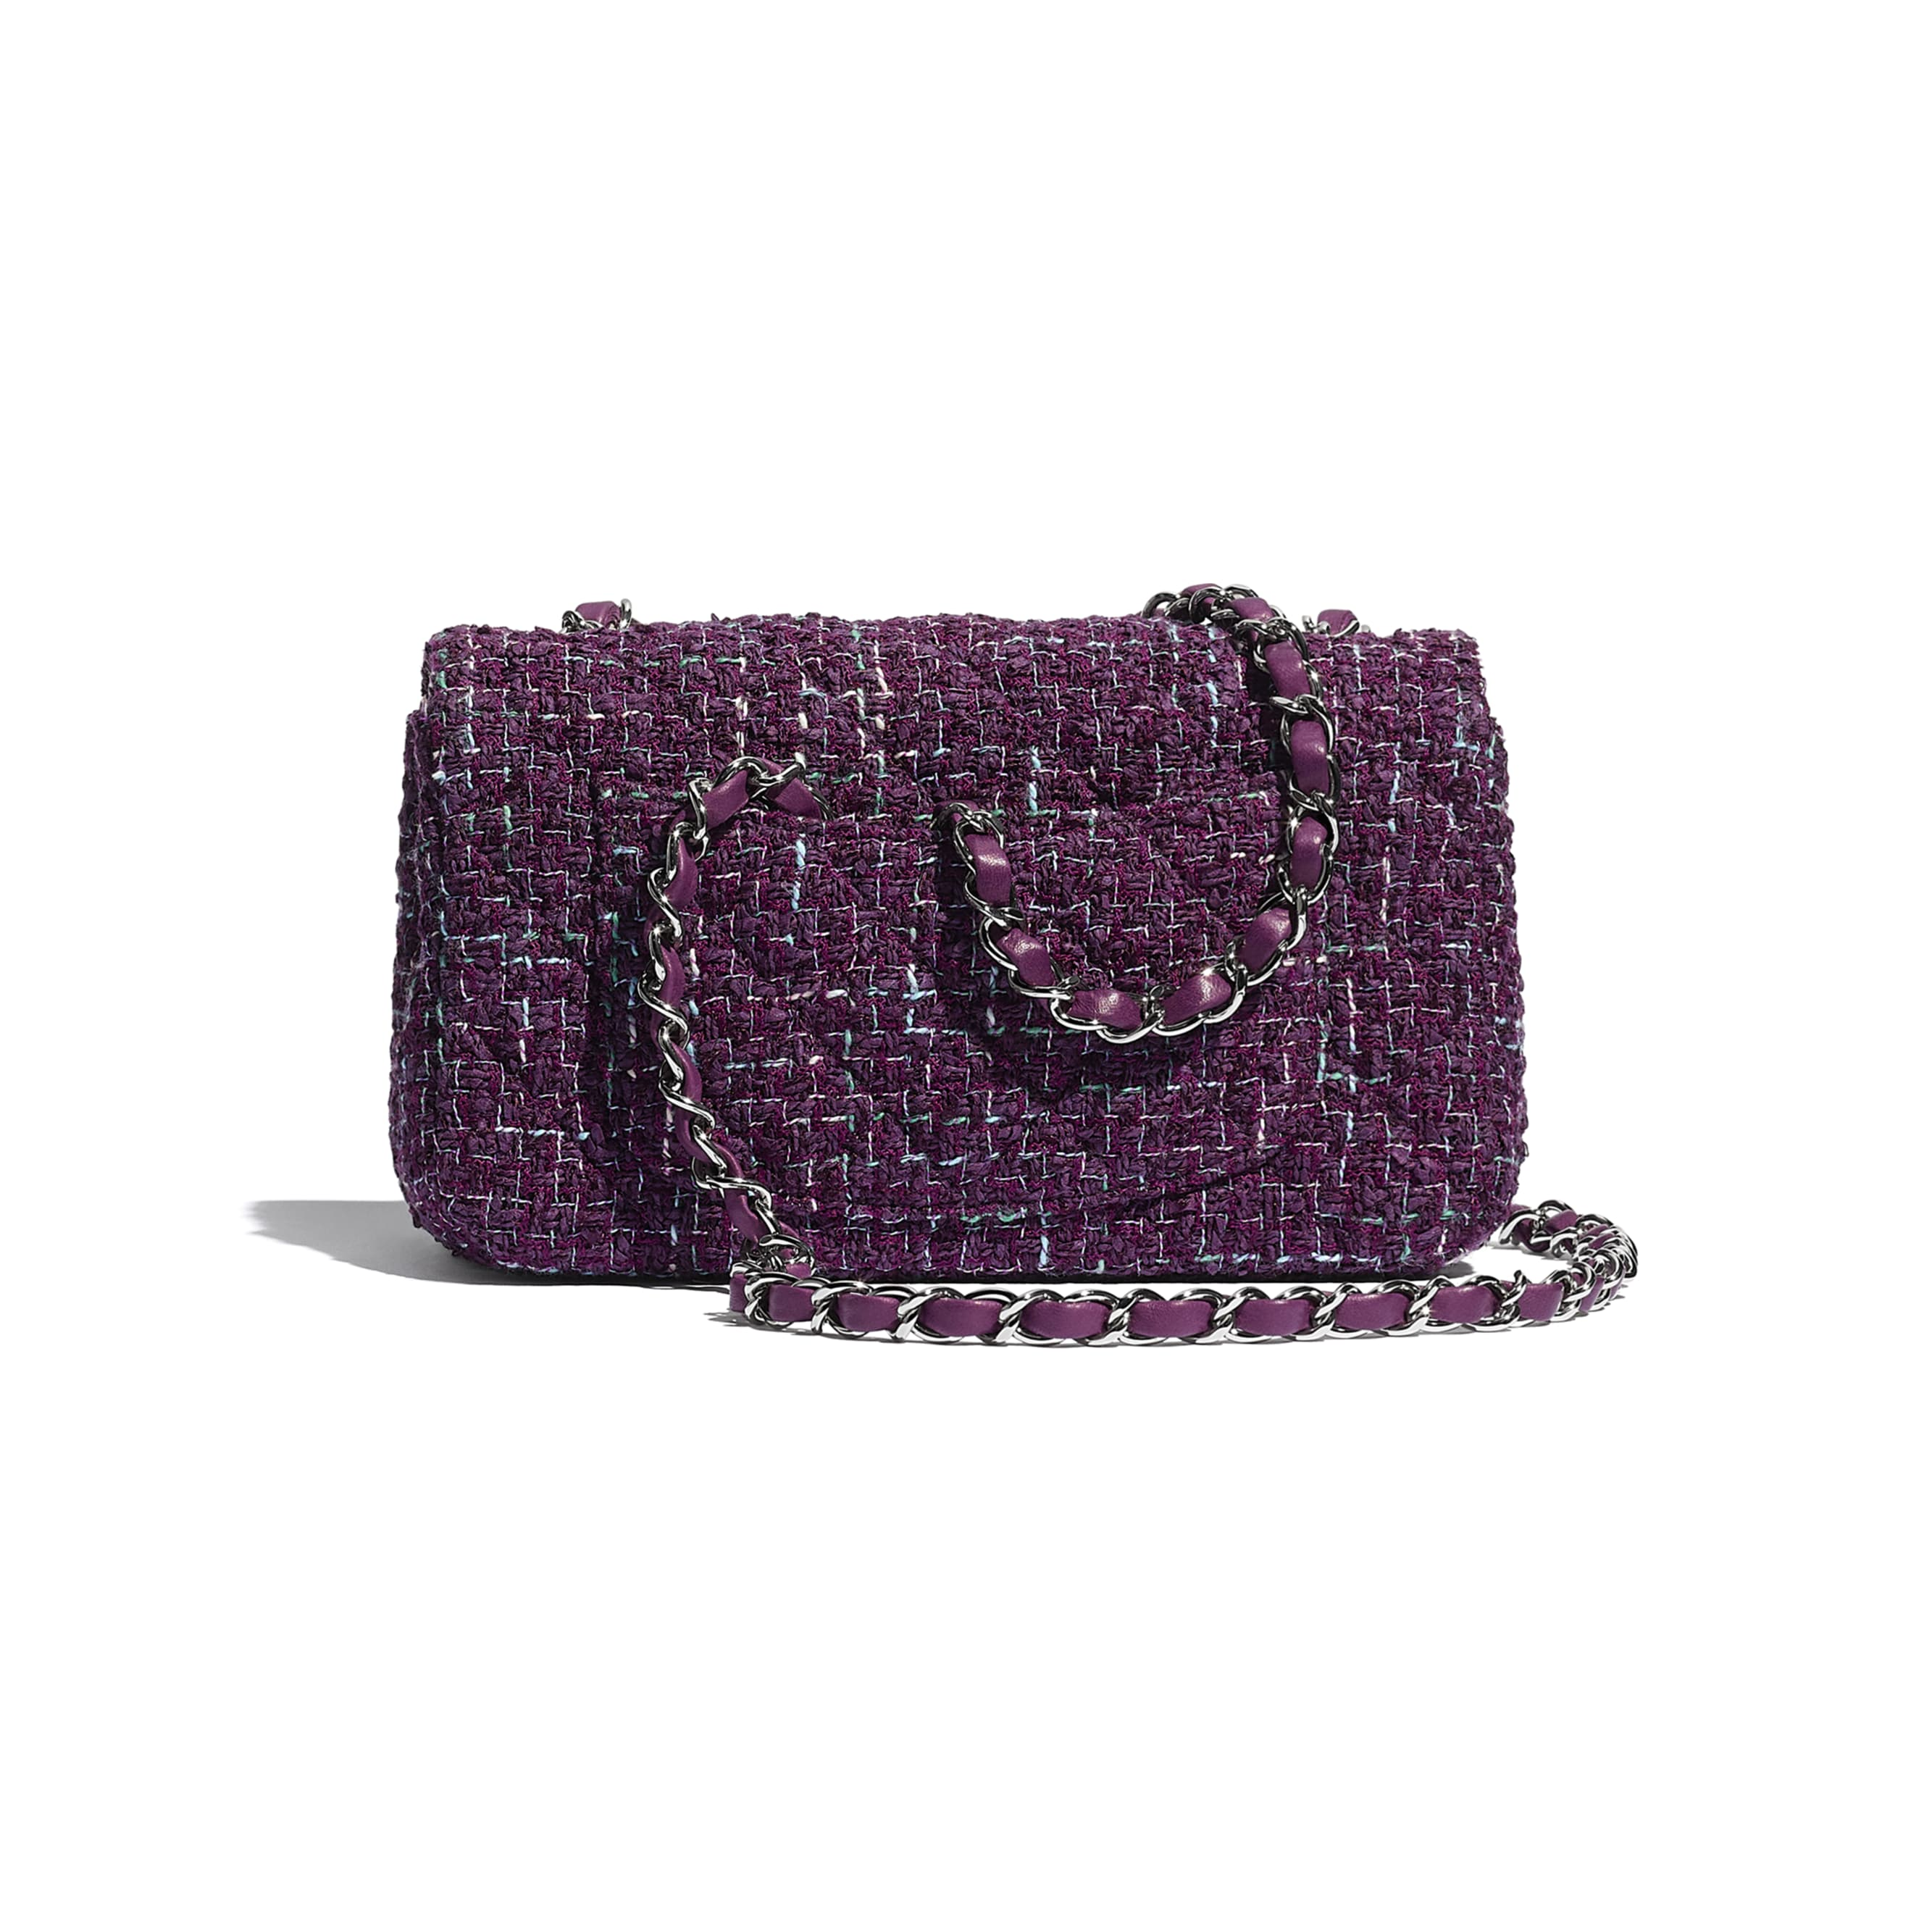 Mini Flap Bag - Purple, Green & Turquoise - Tweed & Silver-Tone Metal - CHANEL - Alternative view - see standard sized version